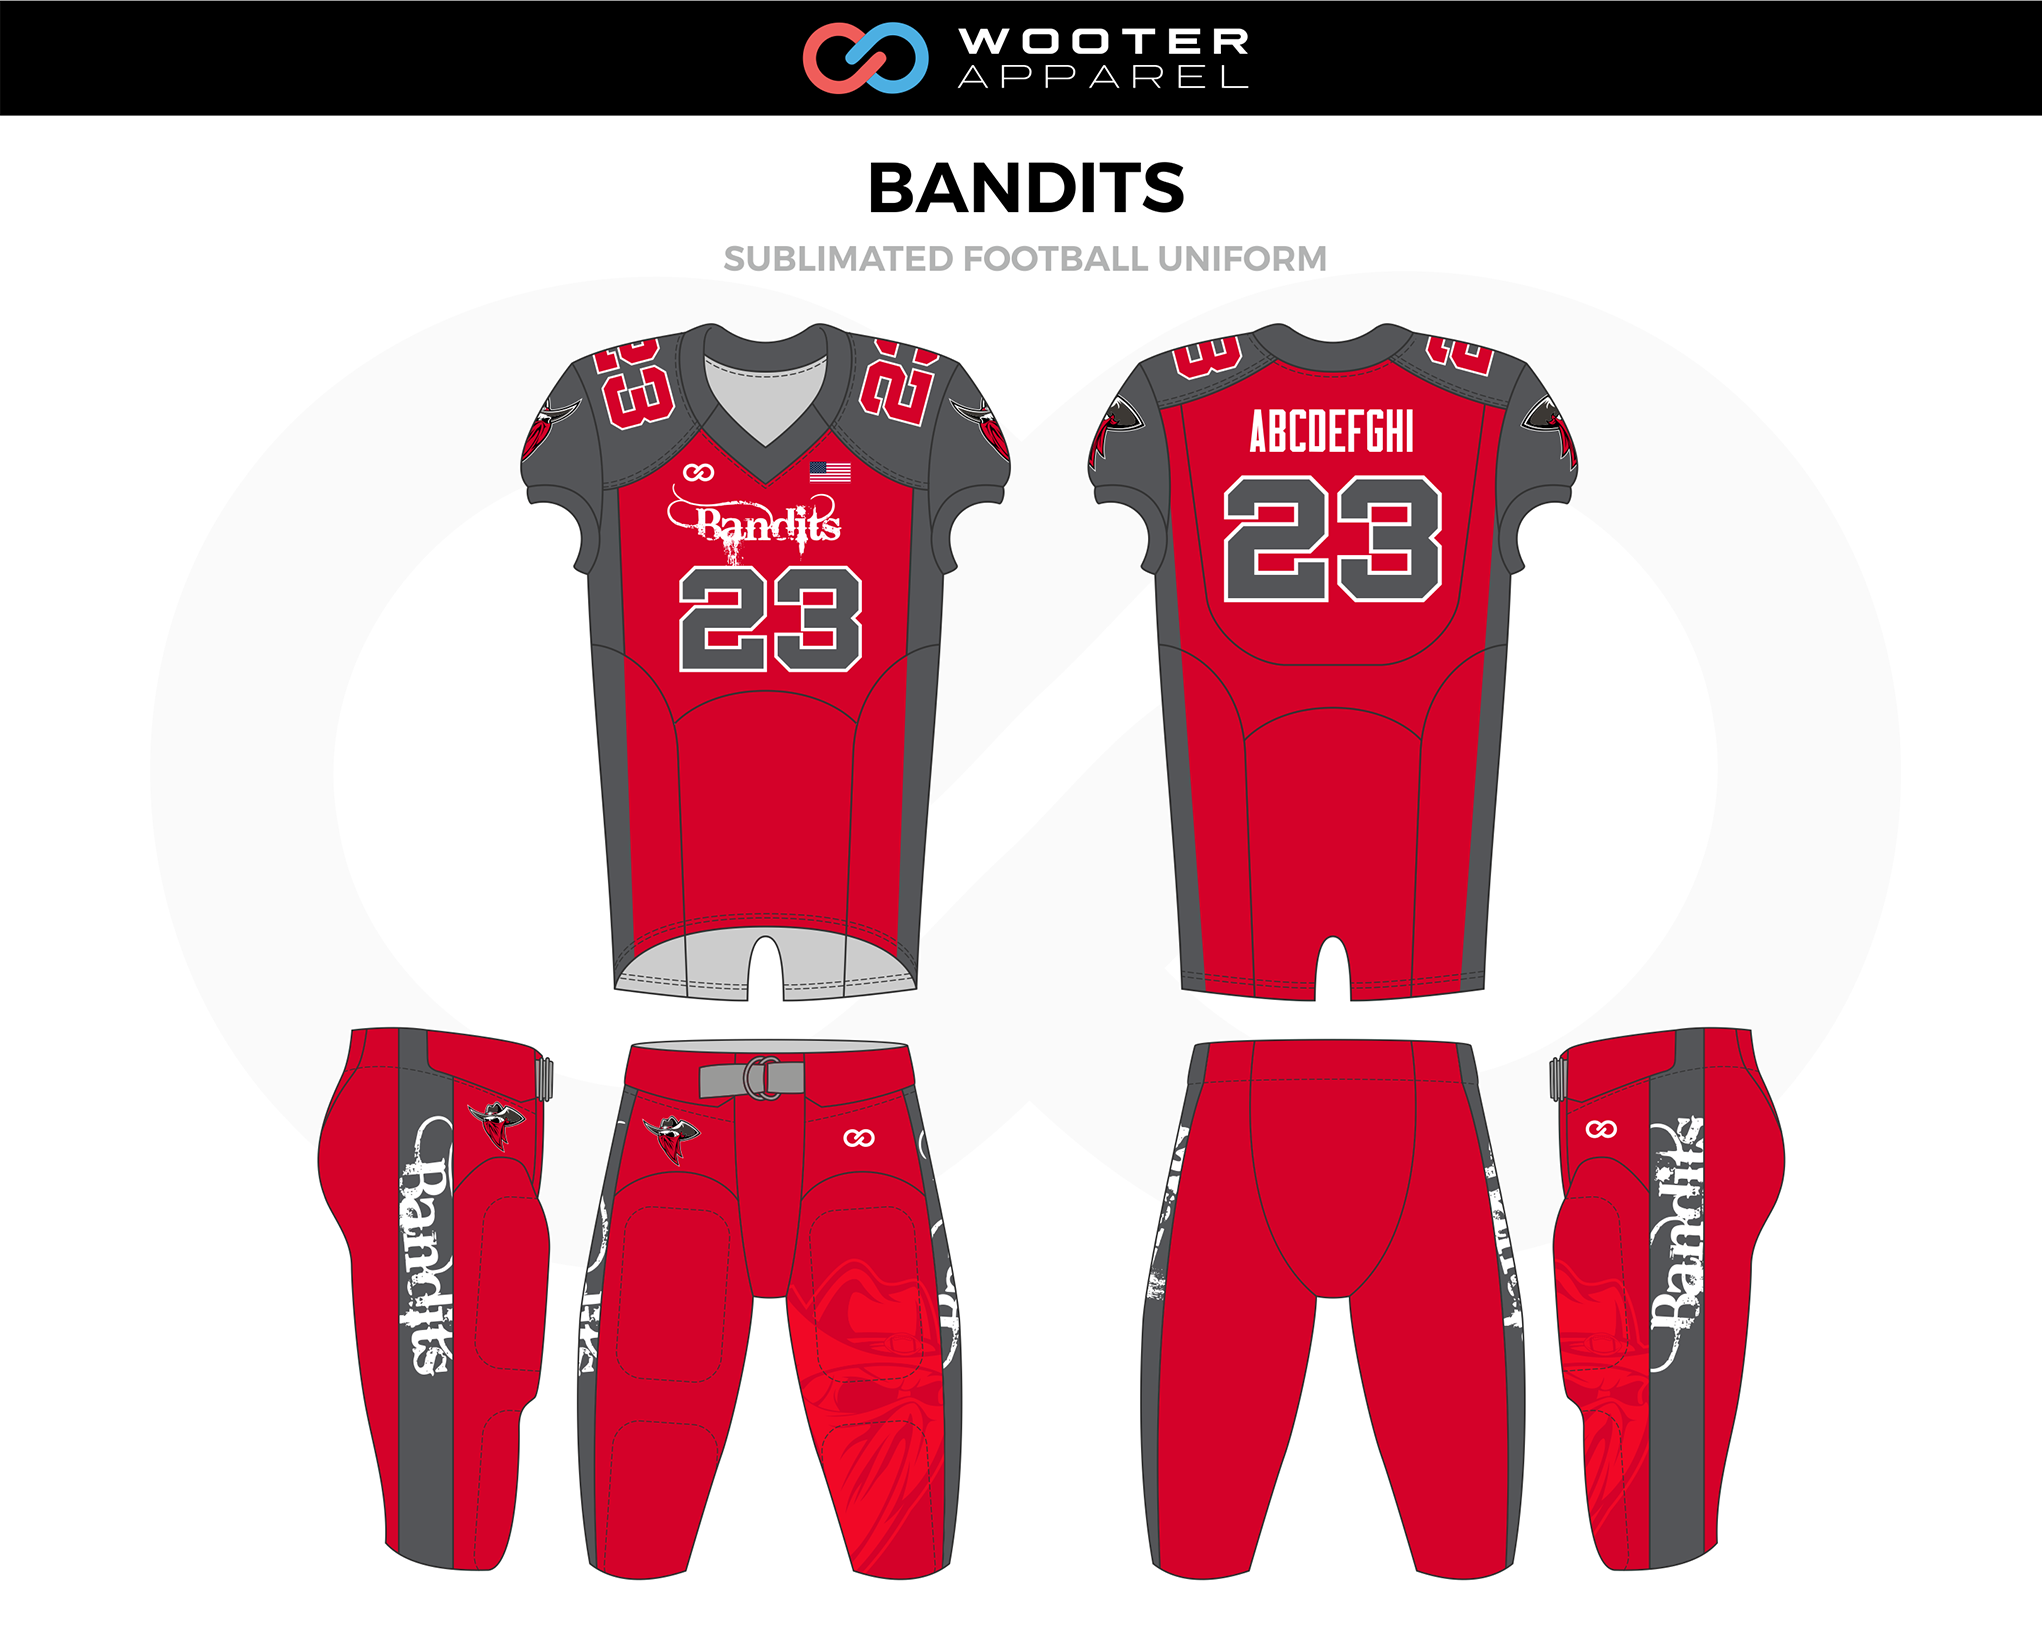 7935217ed Football Designs — Wooter Apparel | Team Uniforms and Custom Sportswear